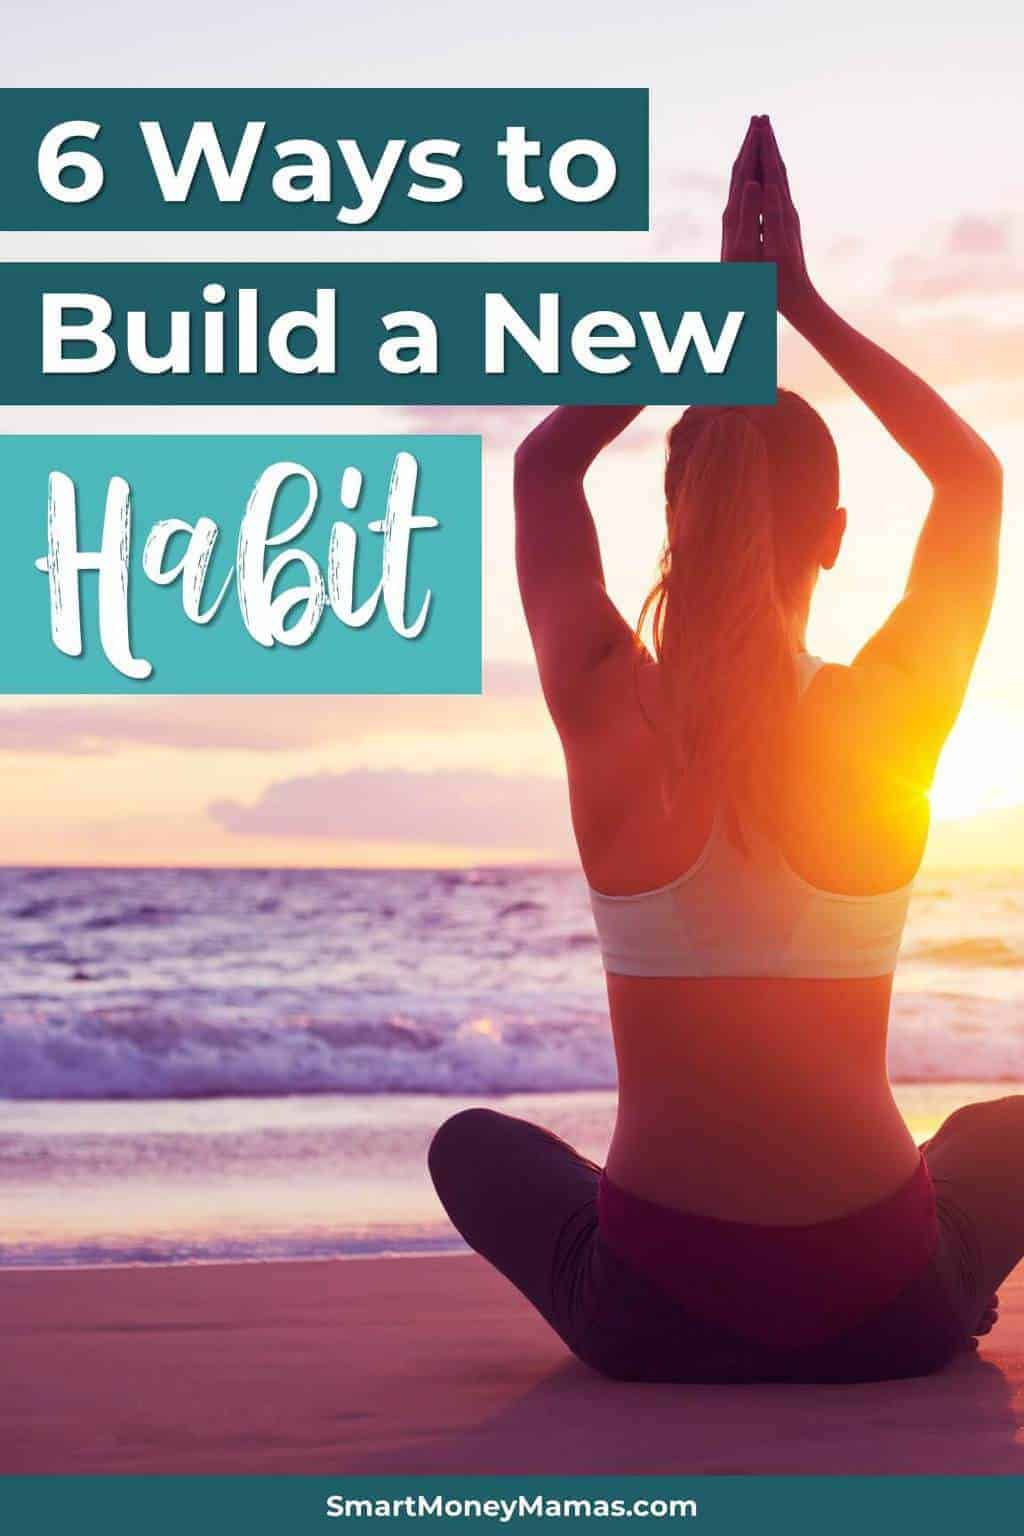 6 Ways to Build a New Habit